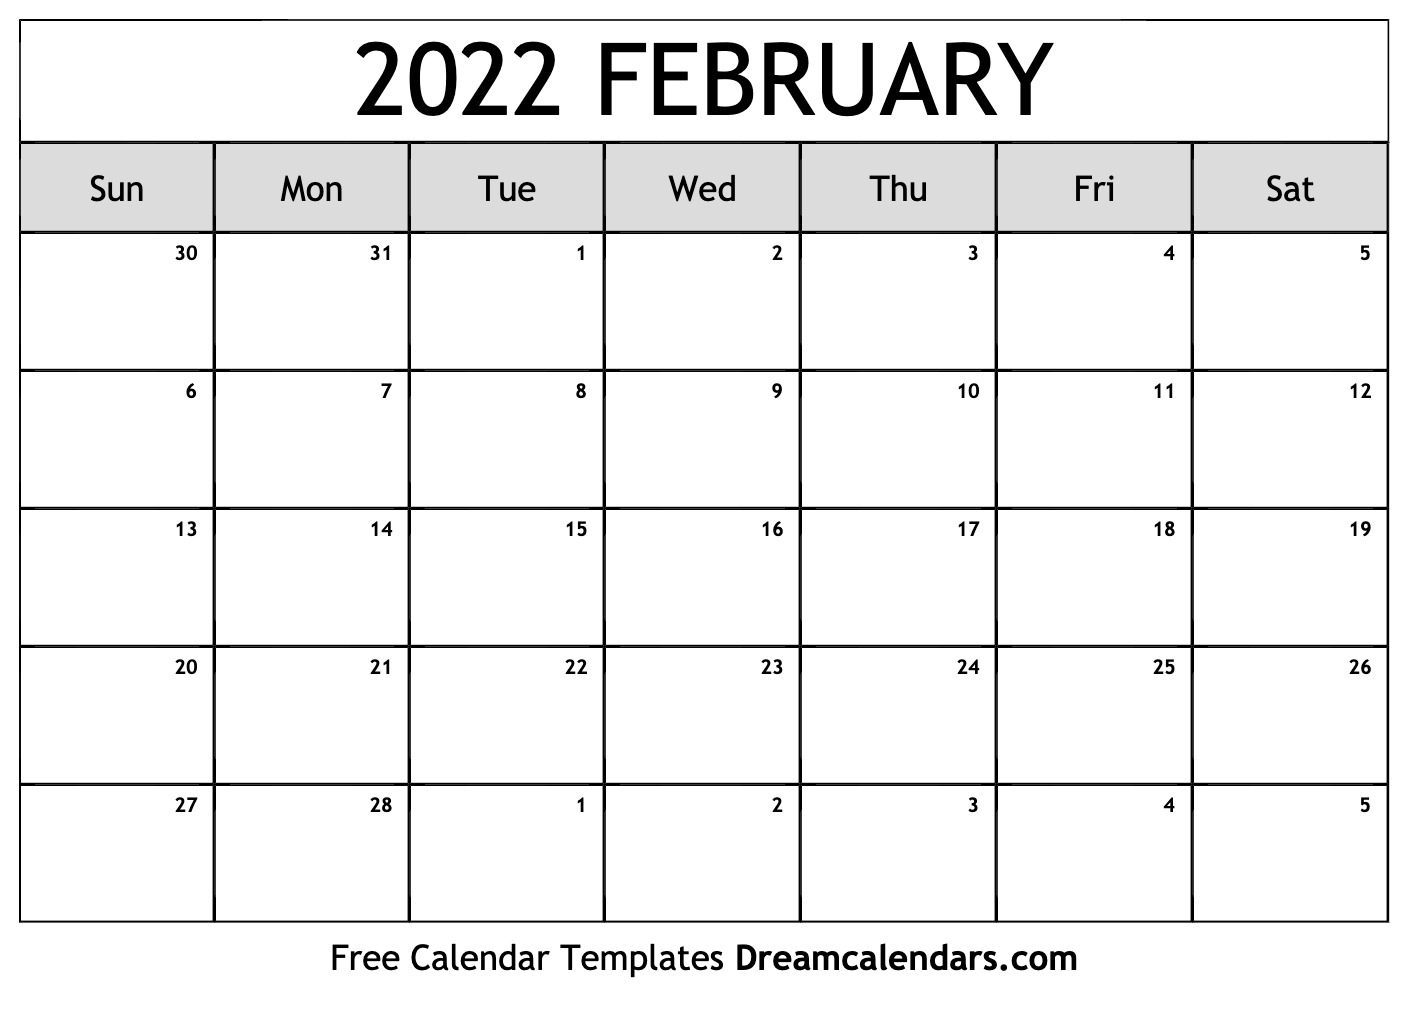 February 2022 Calendar   Free Blank Printable Templates Within Picture Of Calendar For February 2022